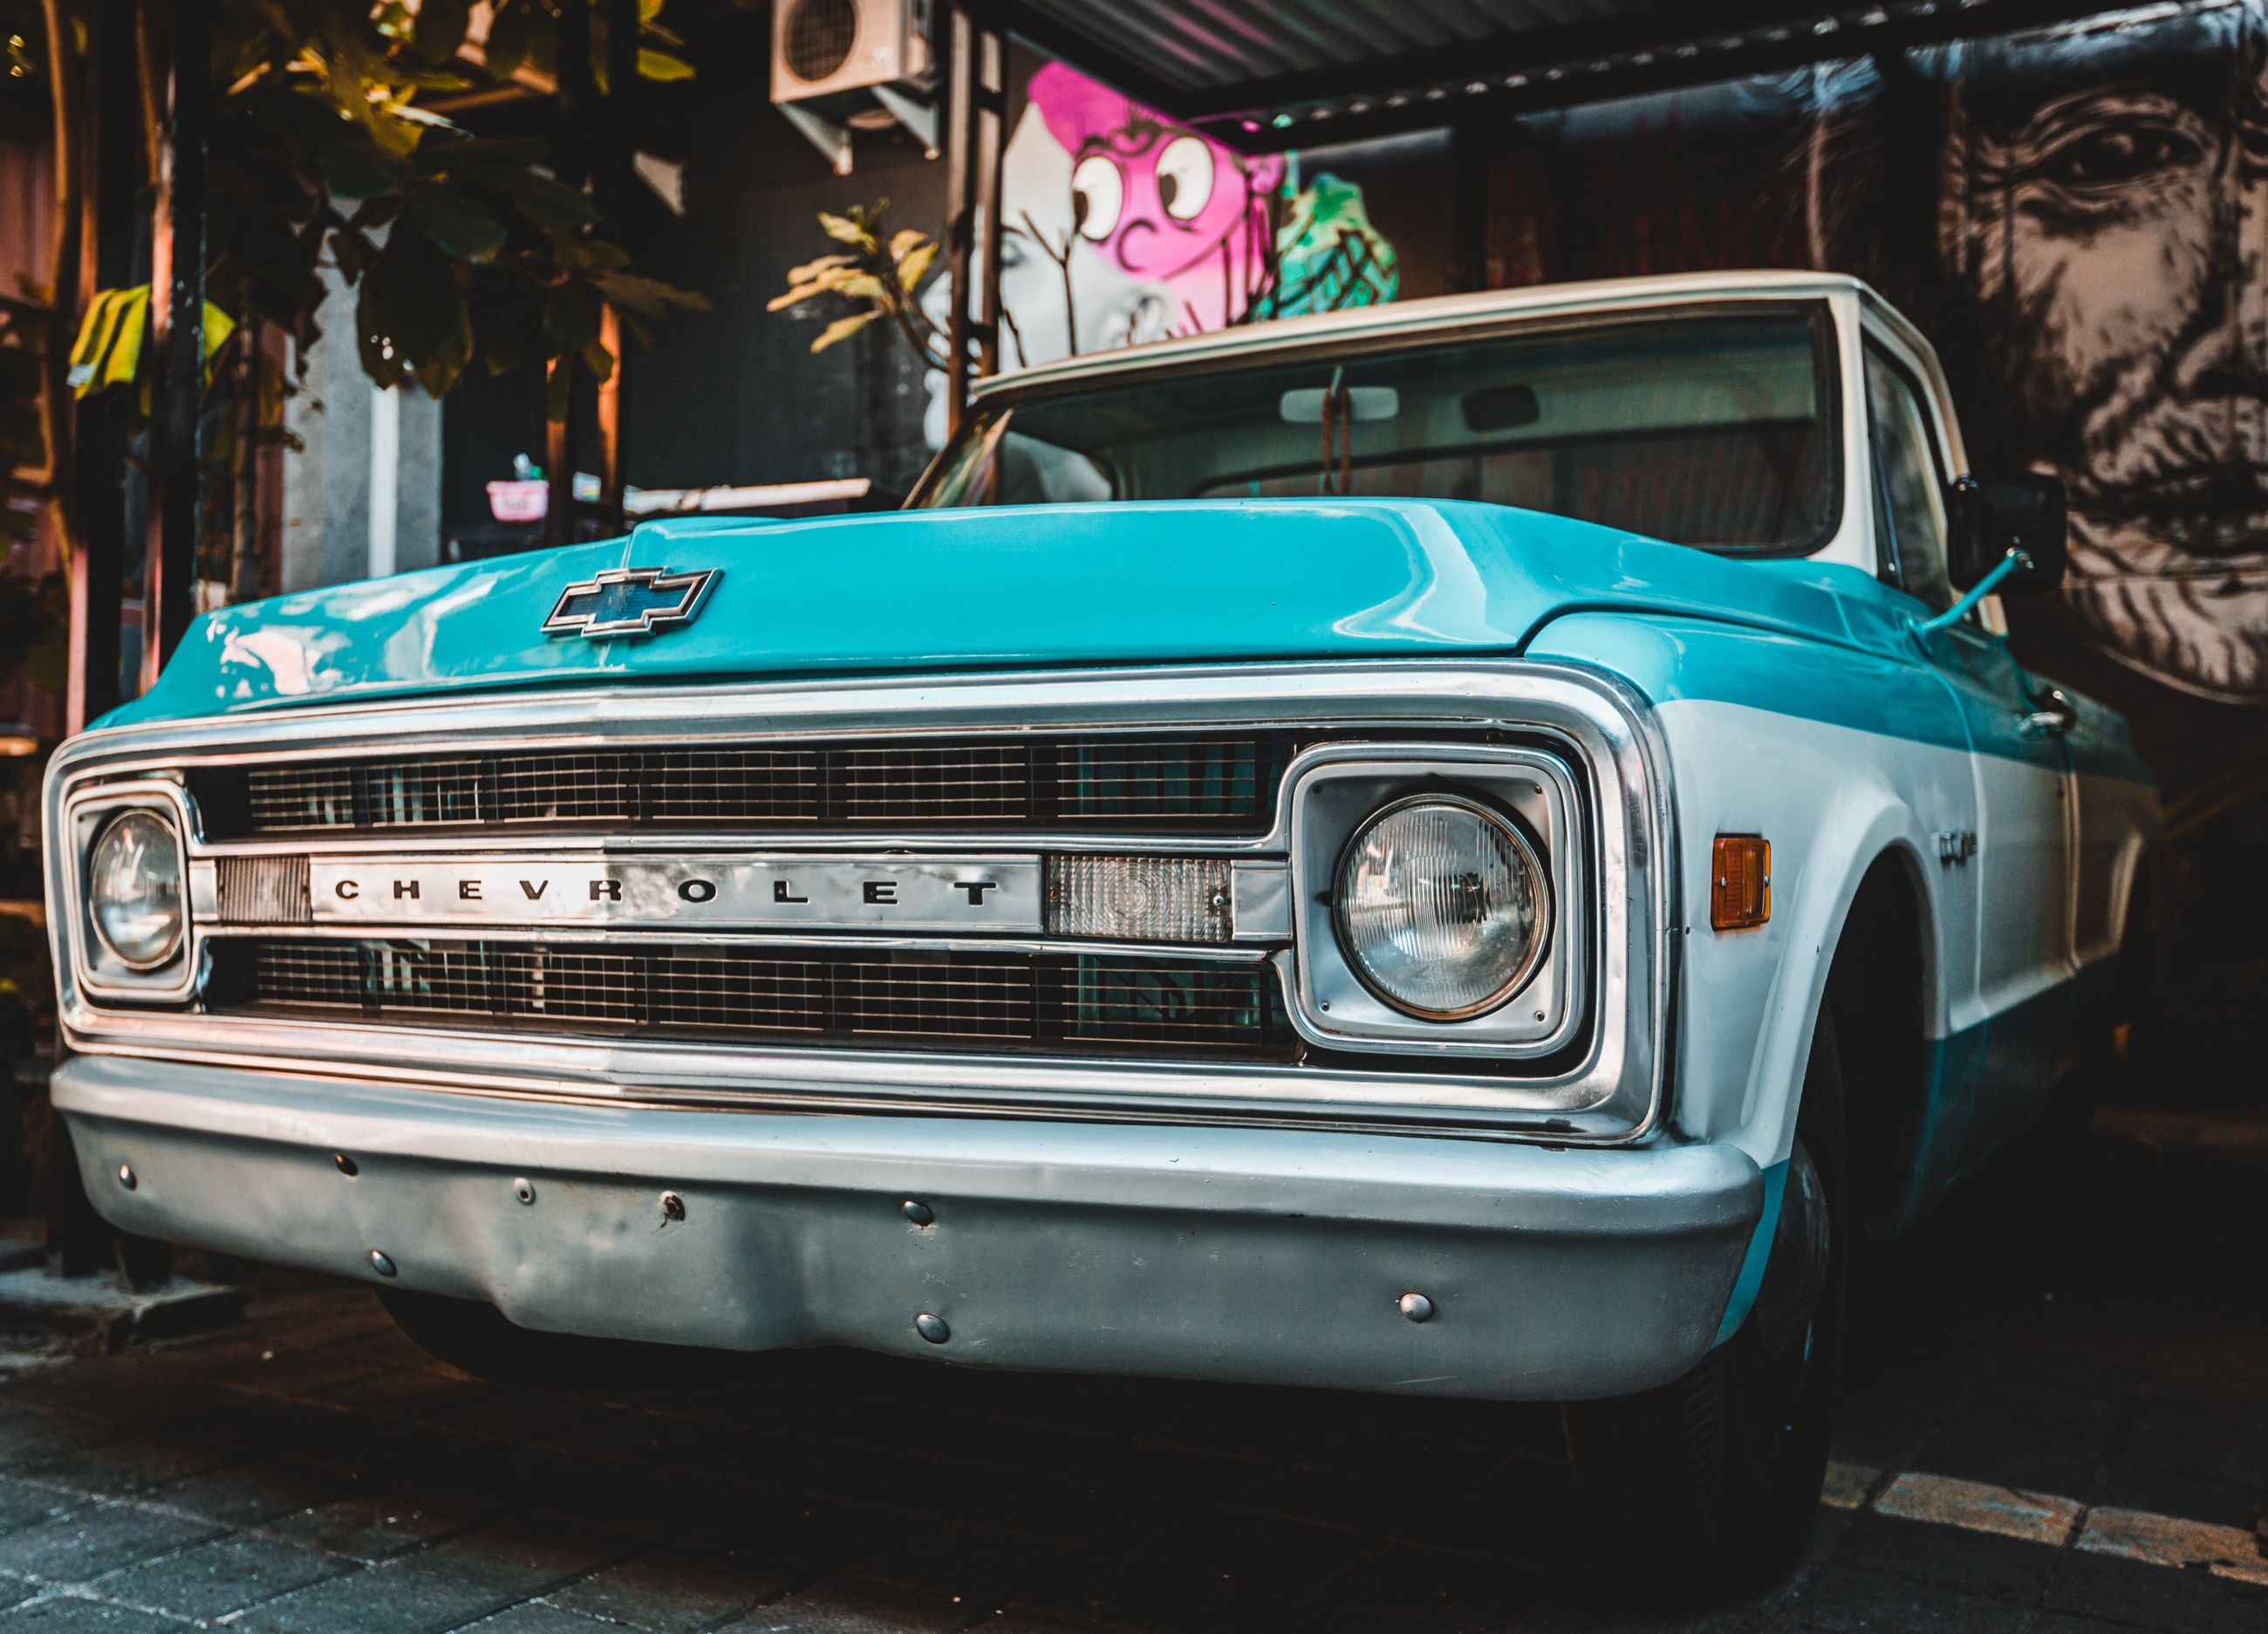 retro styled, car, land vehicle, mode of transportation, motor vehicle, vintage car, transportation, headlight, day, old, no people, stationary, focus on foreground, vintage, city, outdoors, front view, street, metal, silver colored